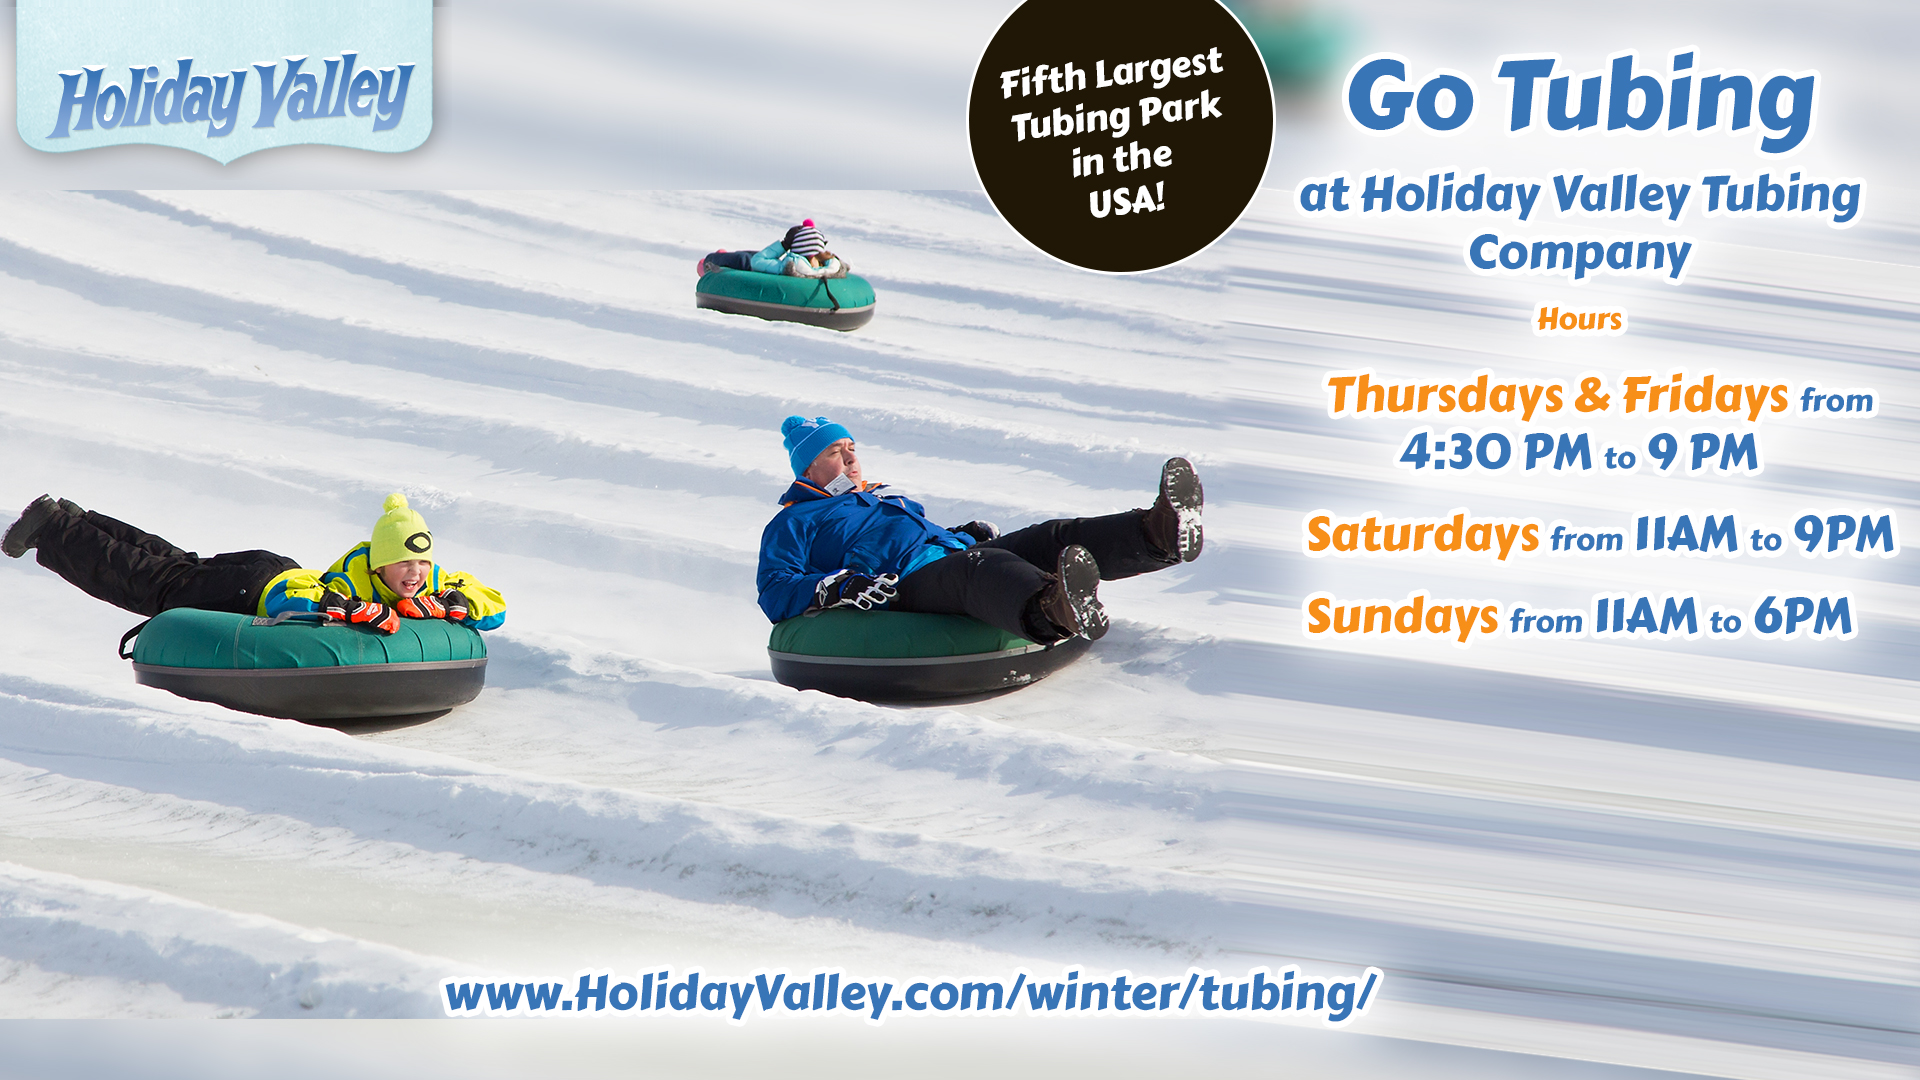 Holiday Valley Tubing is perfect for whole family!